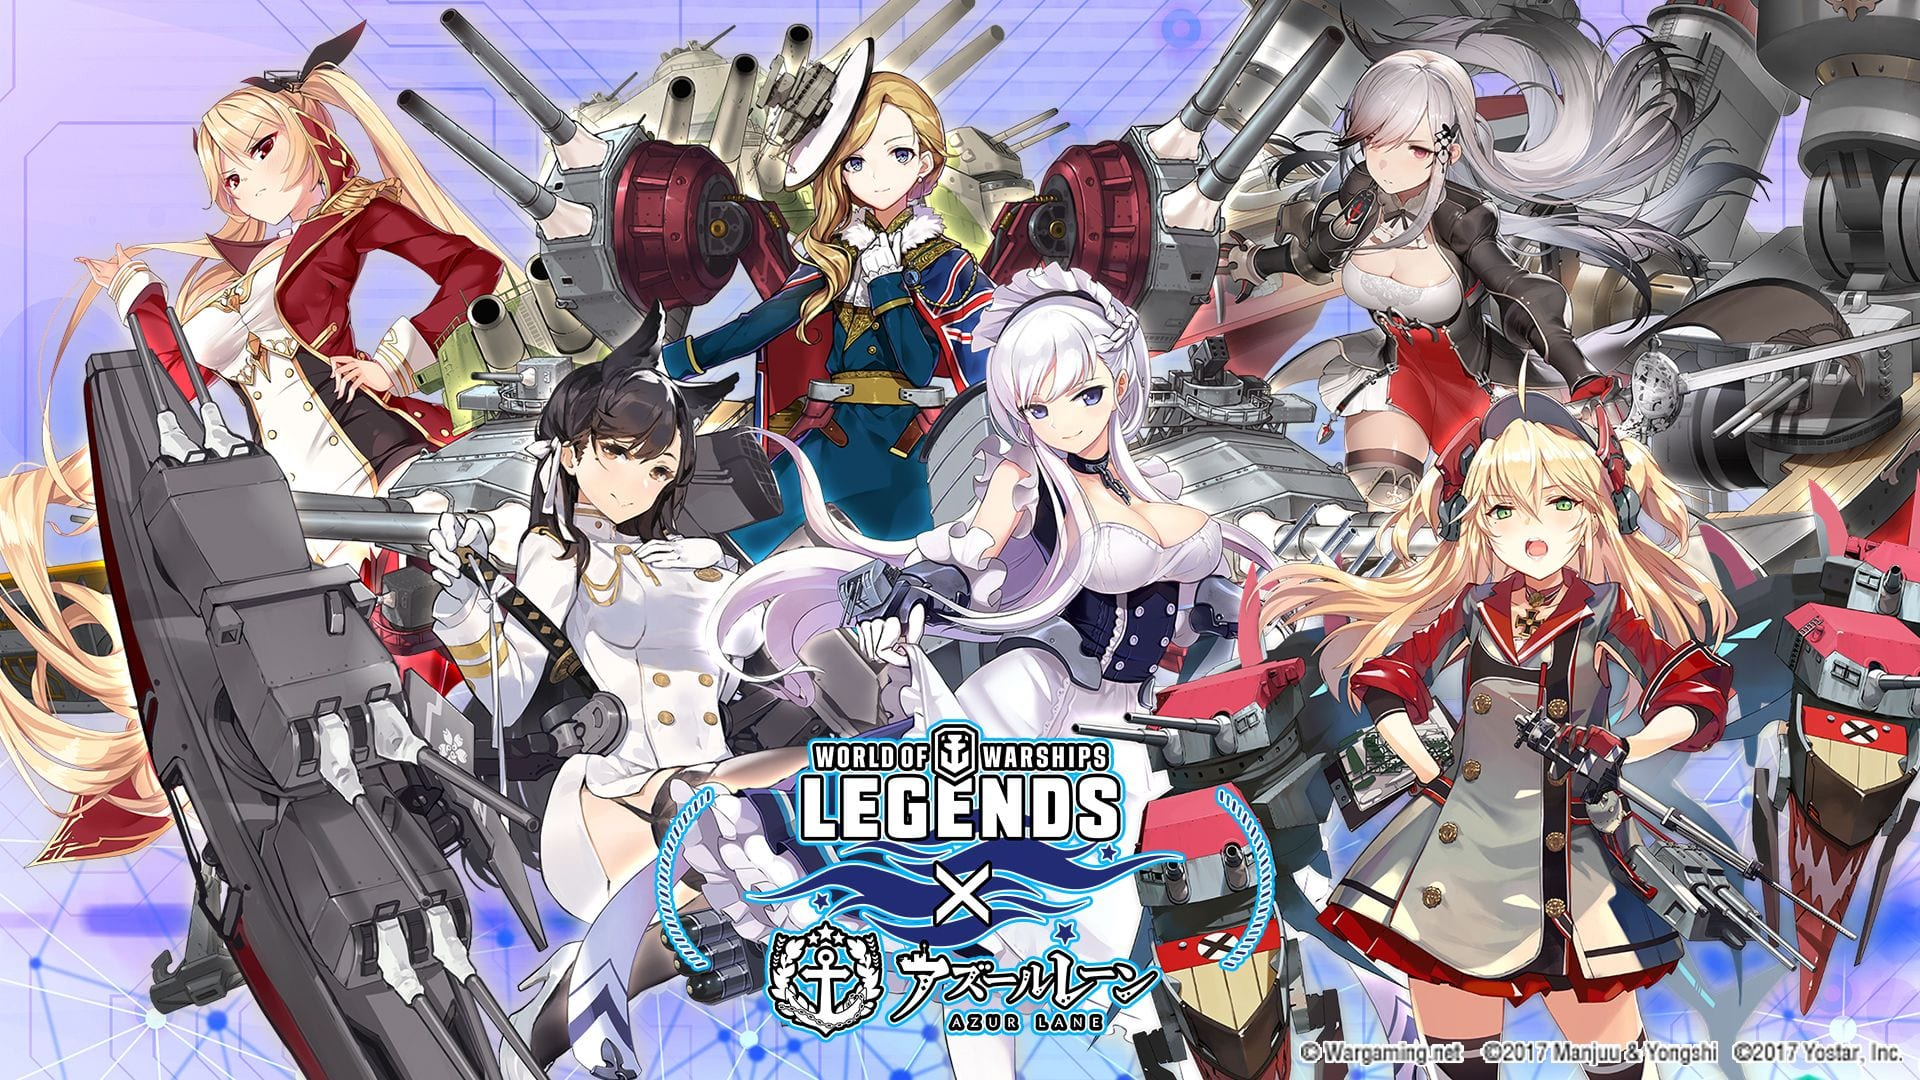 World of Warships: Legends x Azur Lane